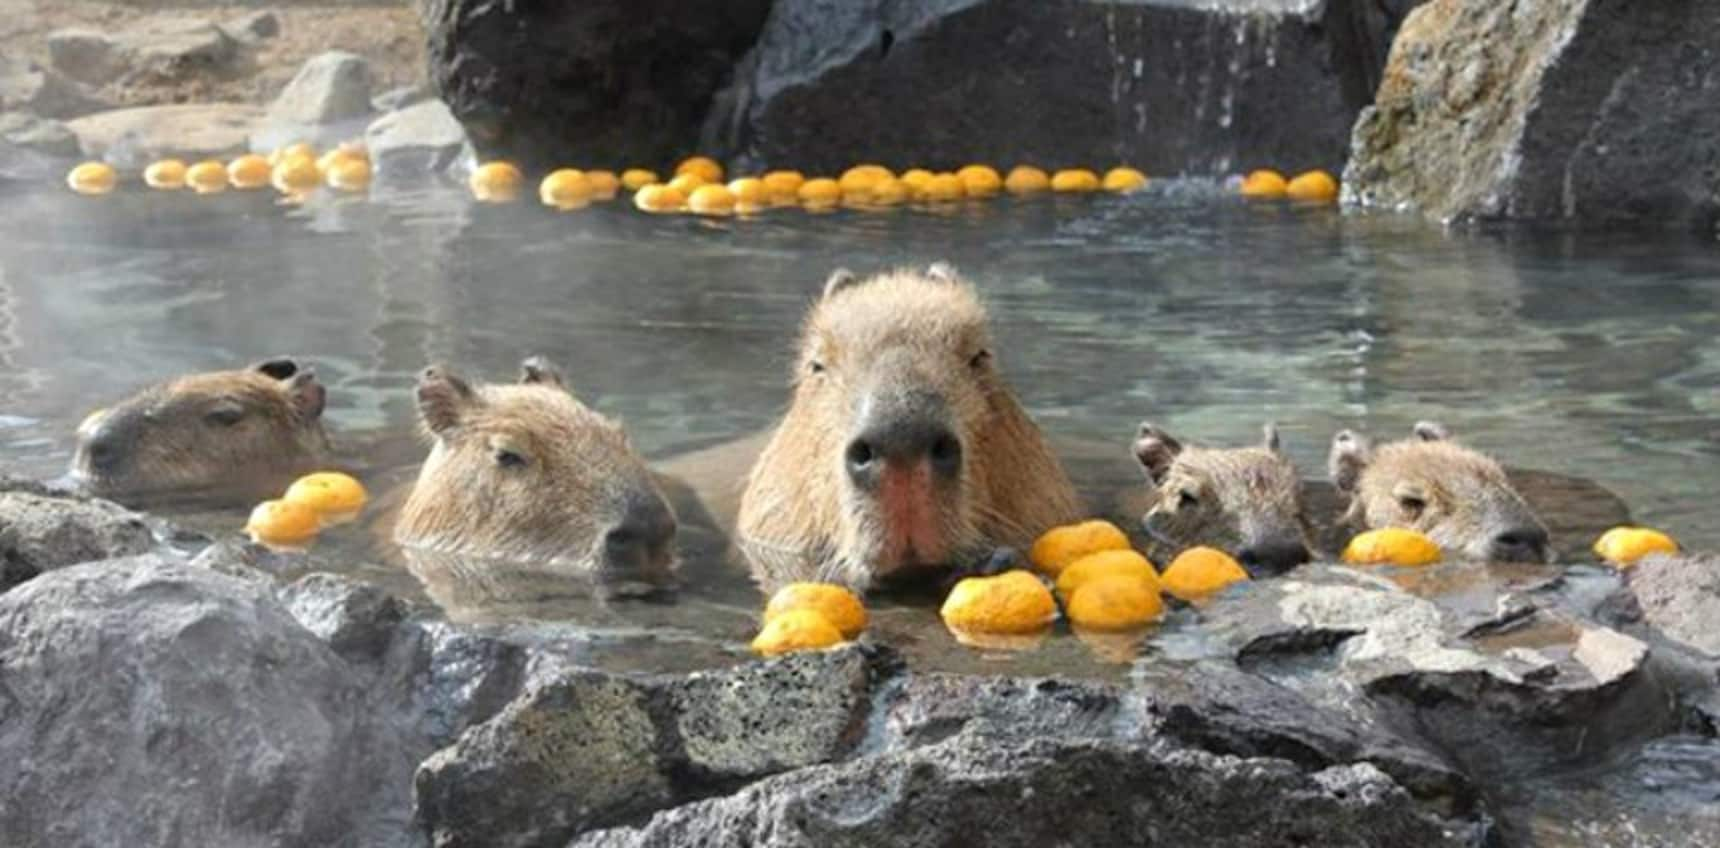 Adorable Capybara Hot Springs